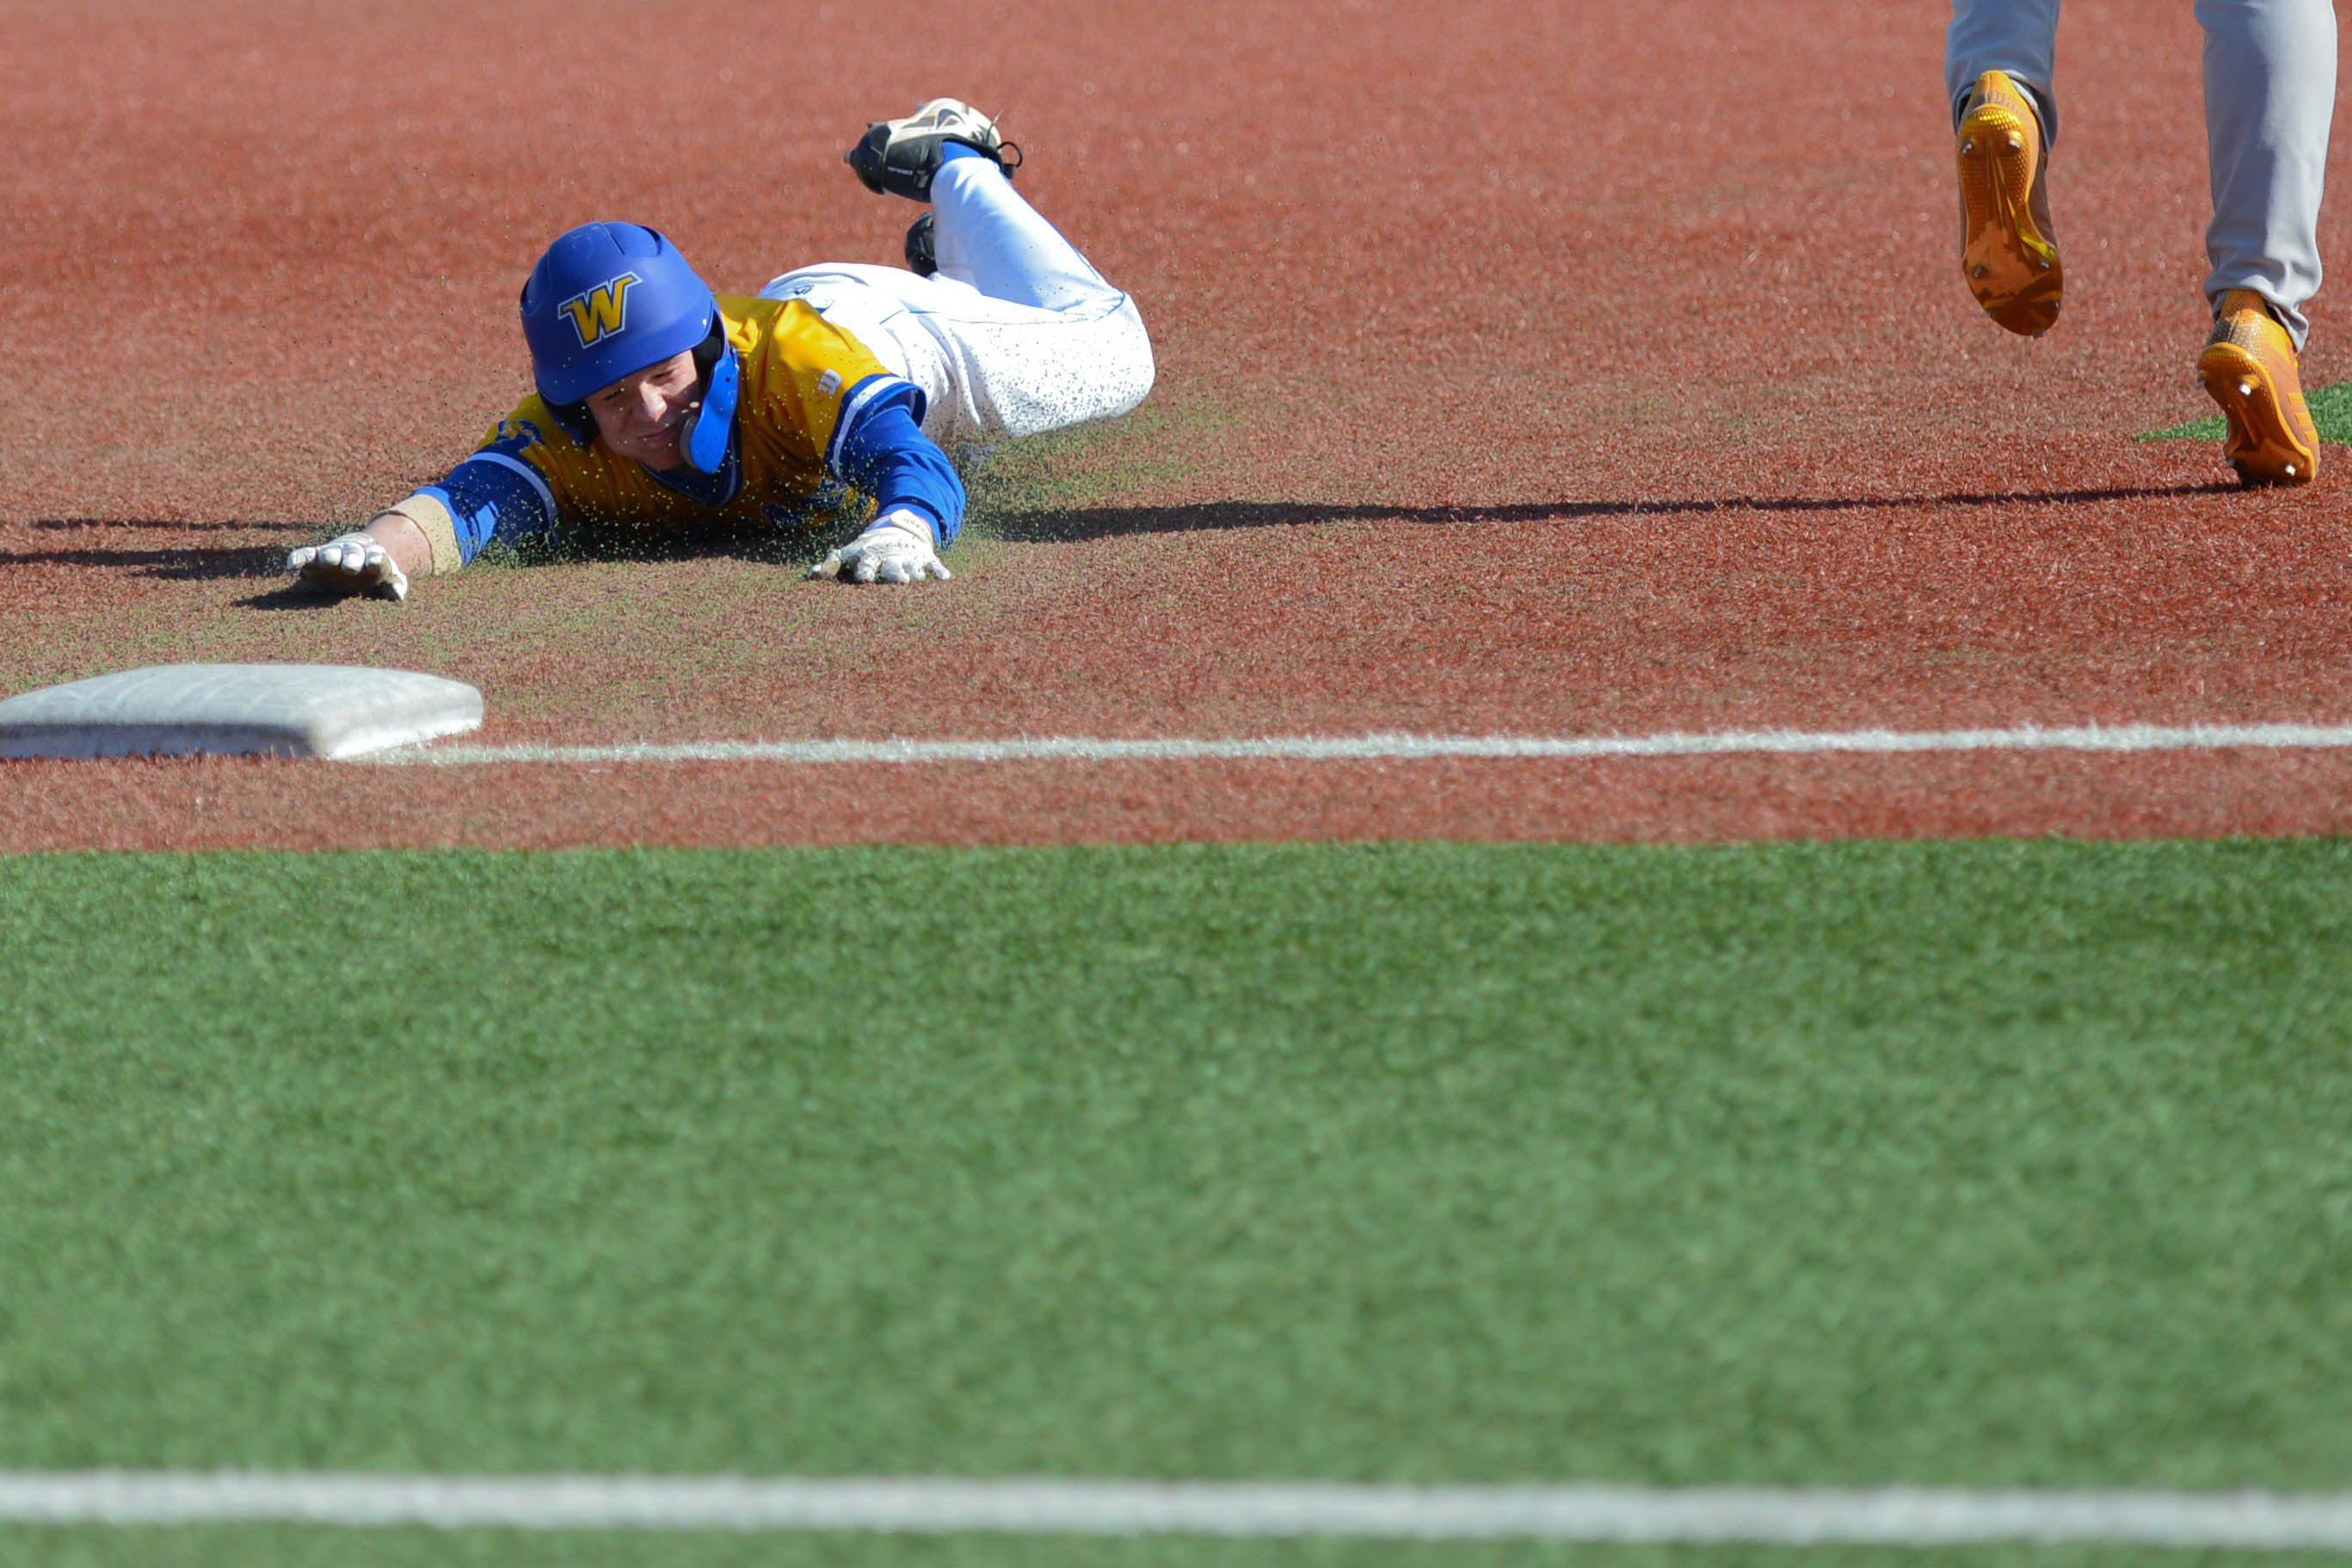 A Wayzata baserunner slides into third base against Totino-Grace during the Trojans' 7-4 loss to the Eagles Saturday. Photo by Carter Jones, SportsEngine